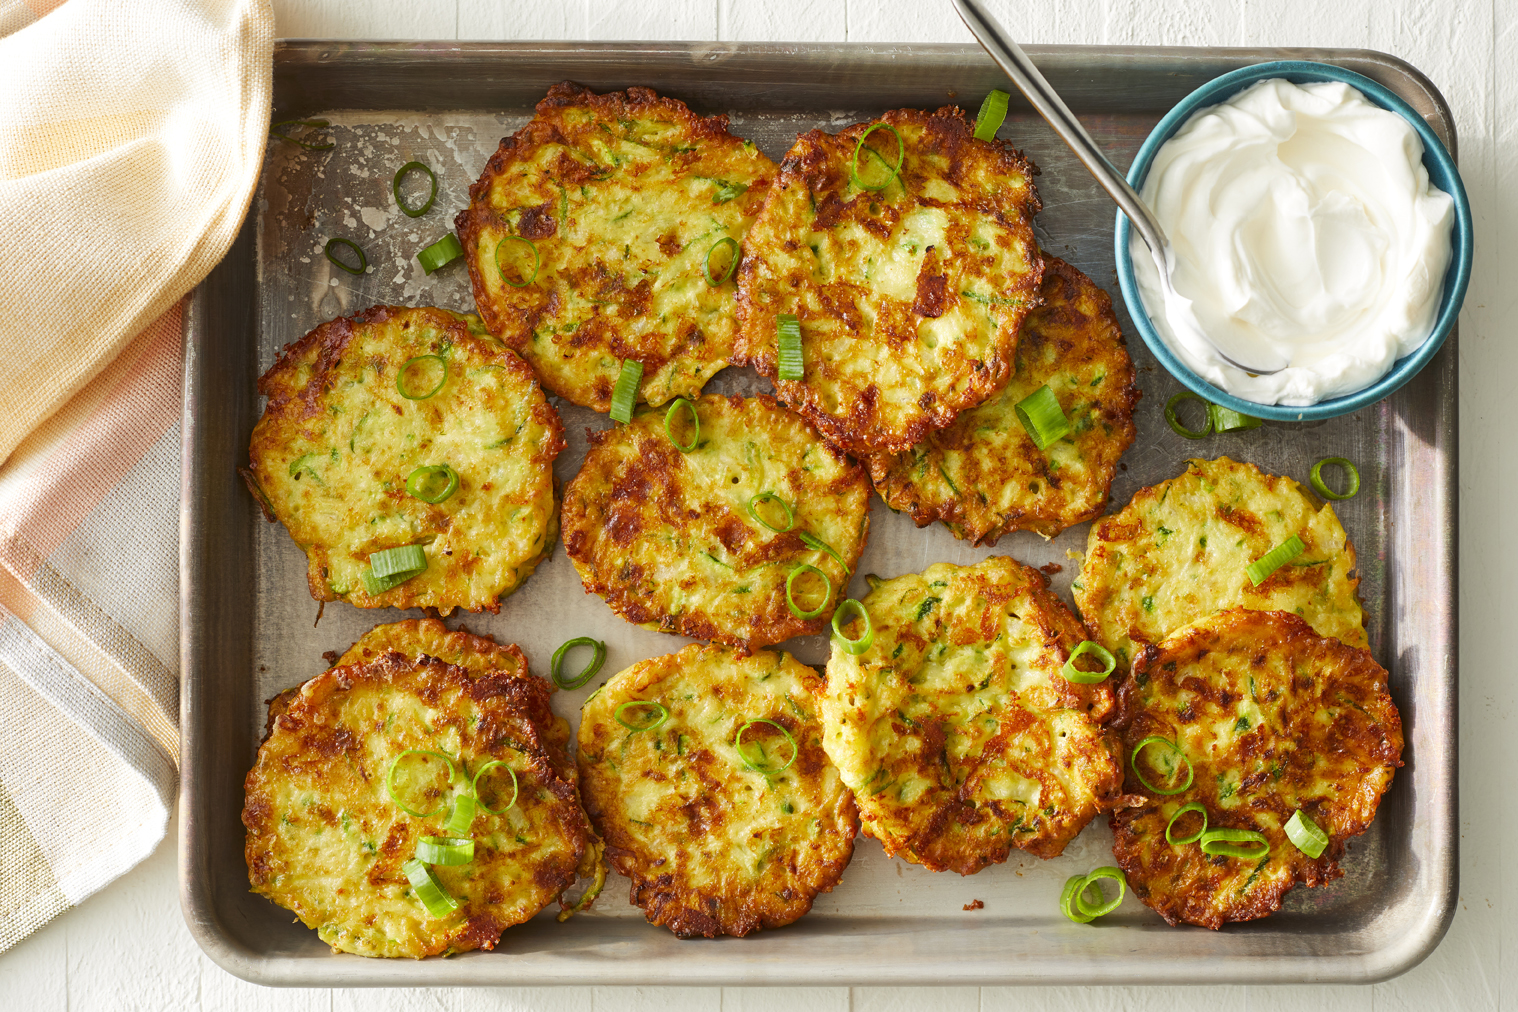 A tray of fresh of the stove zucchini patties. Garnished with sliced green onions and a side of sour cream